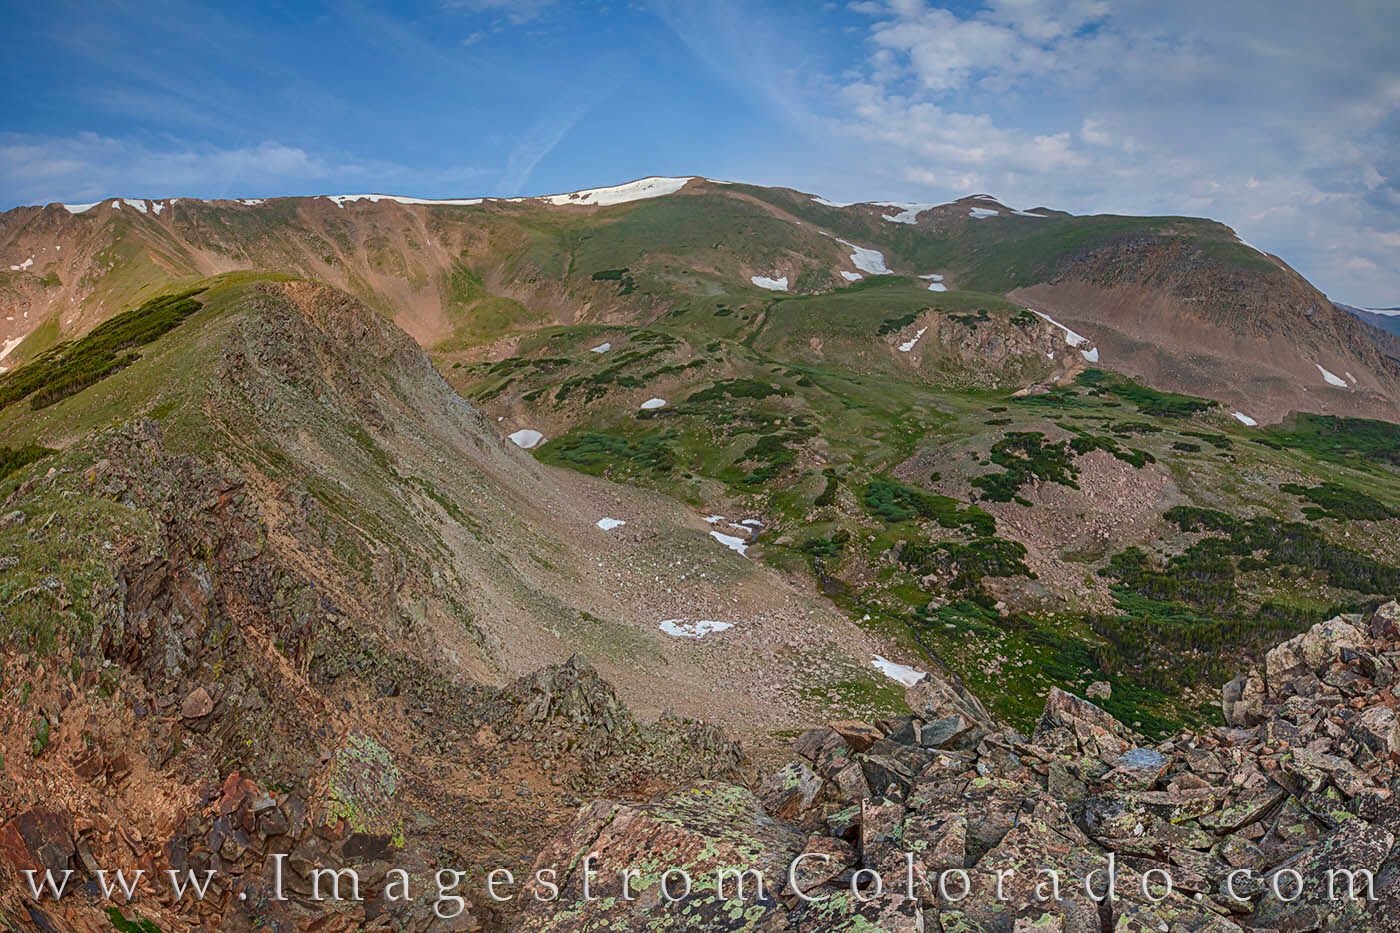 The Butler Gulch Loop is a relatively easy 5.7 mile hike up through the gulch, then along a ridge, then back down into the valley...